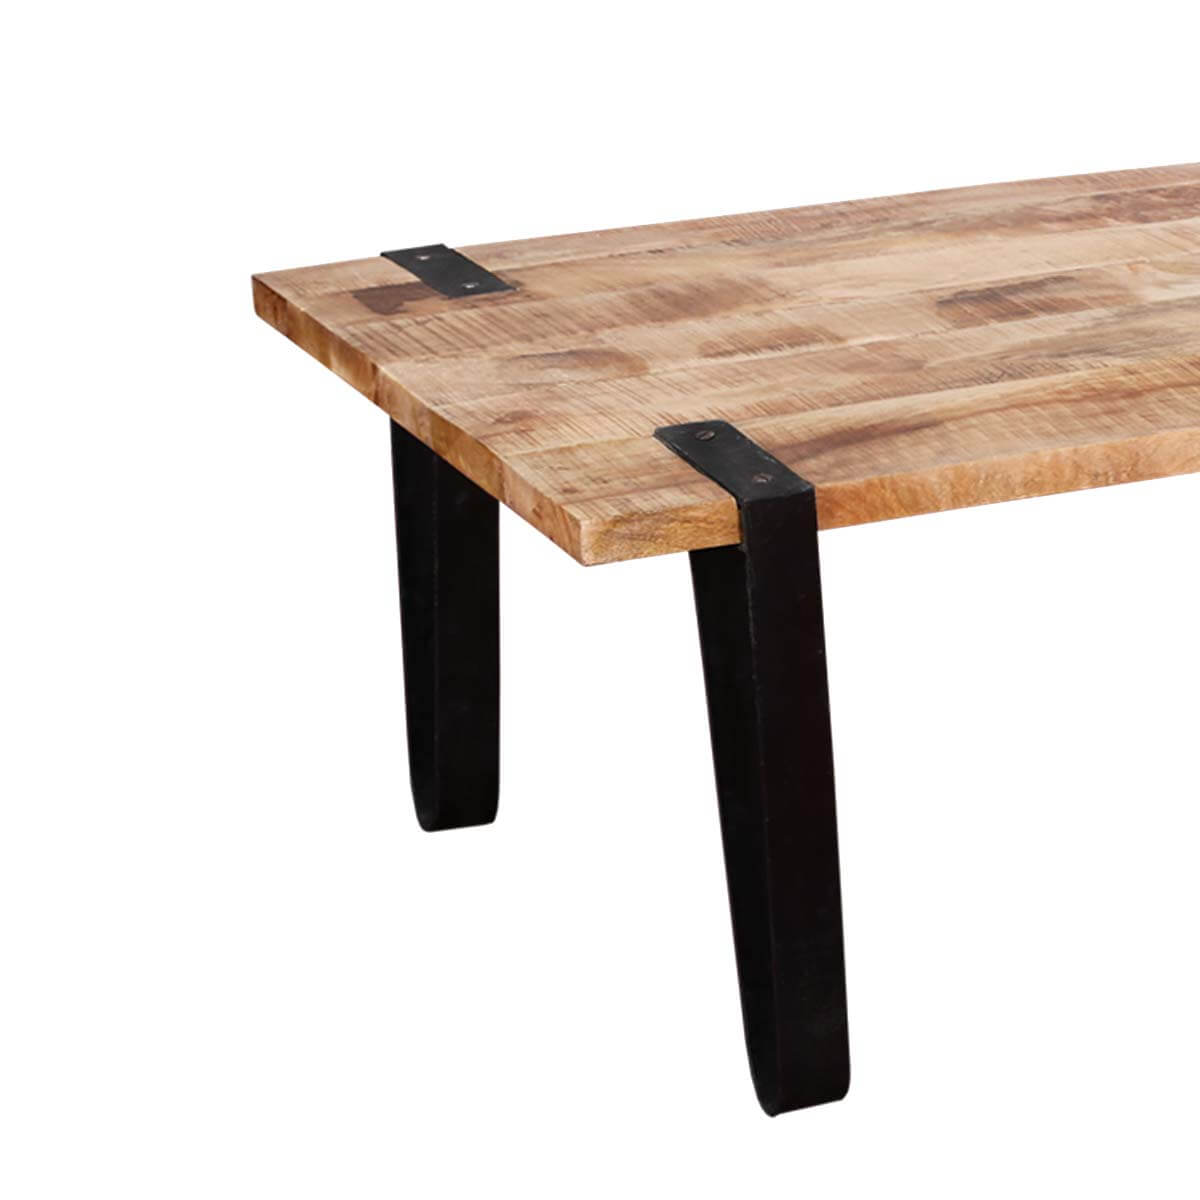 Solid Wood And Metal Coffee Table: Montana Stylish Rectangular Solid Wood And Iron Accent